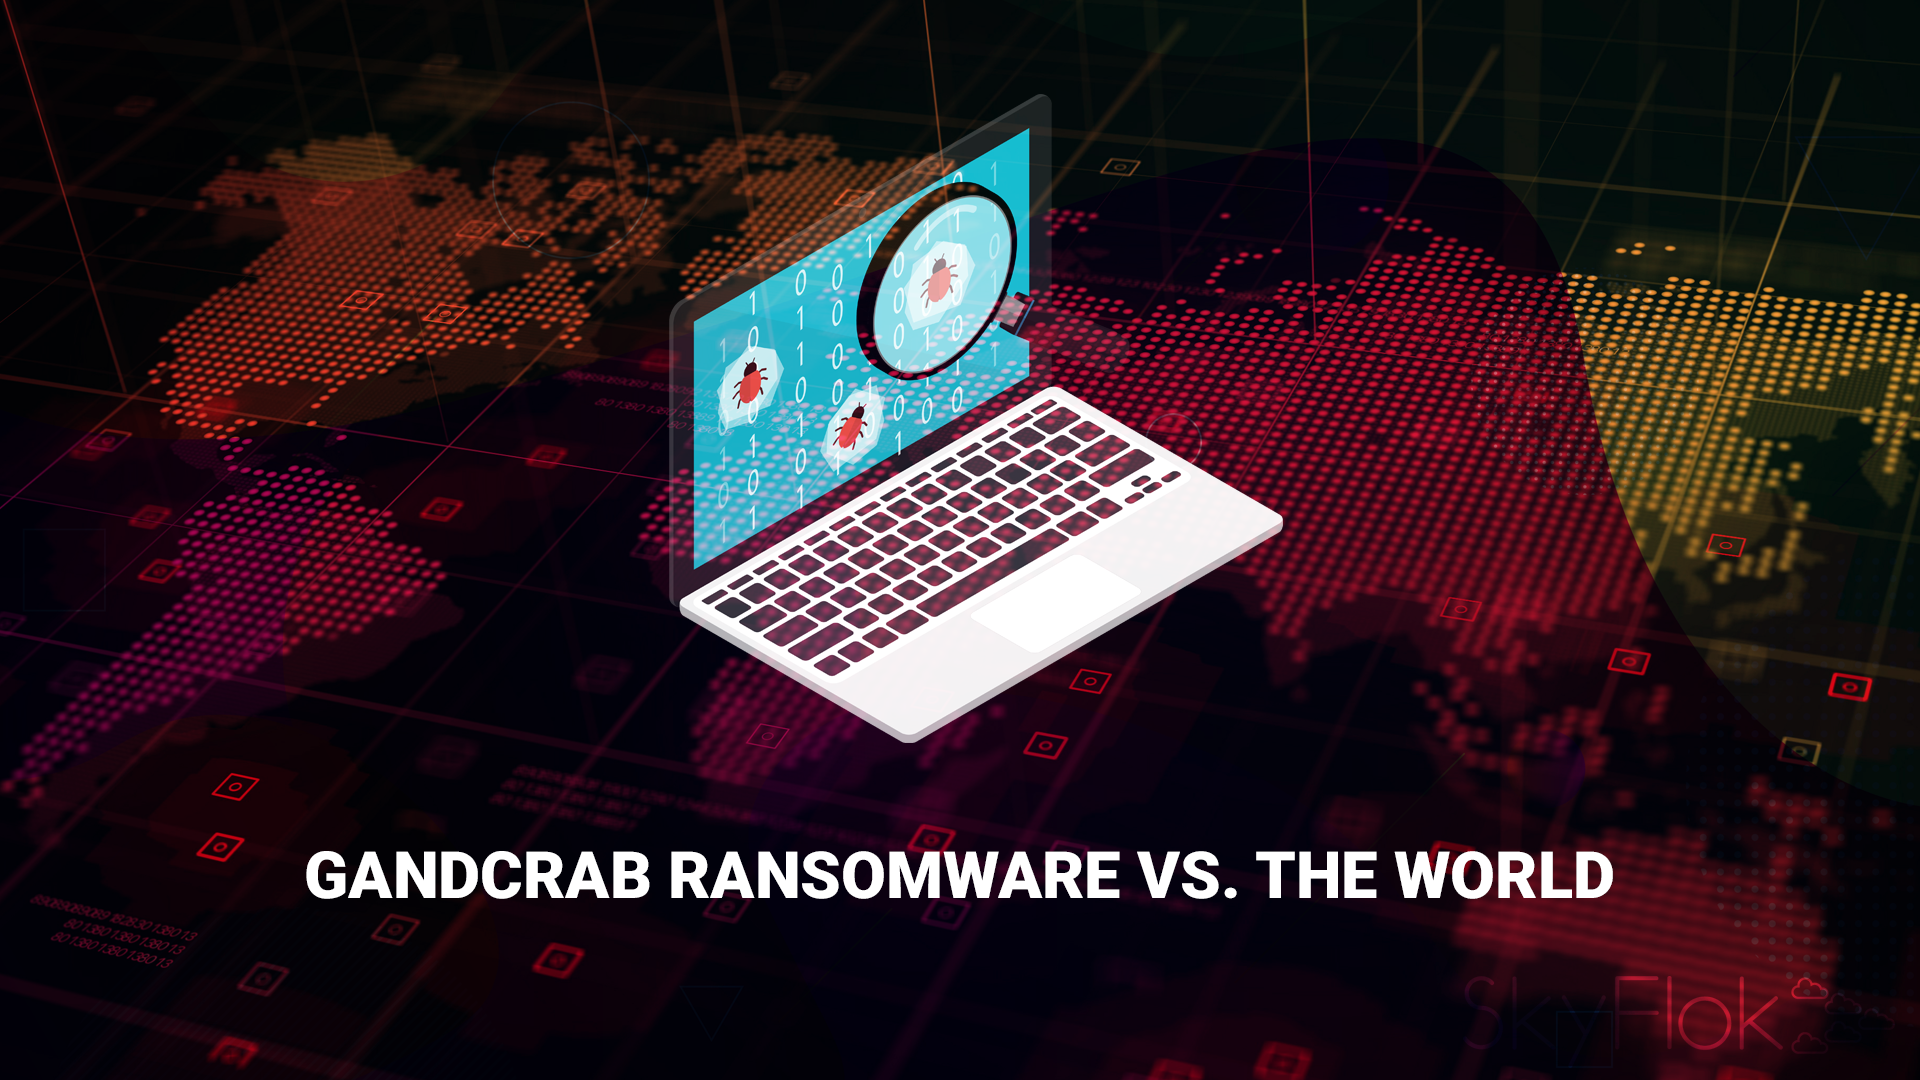 Gandcrab ransomware vs. the world